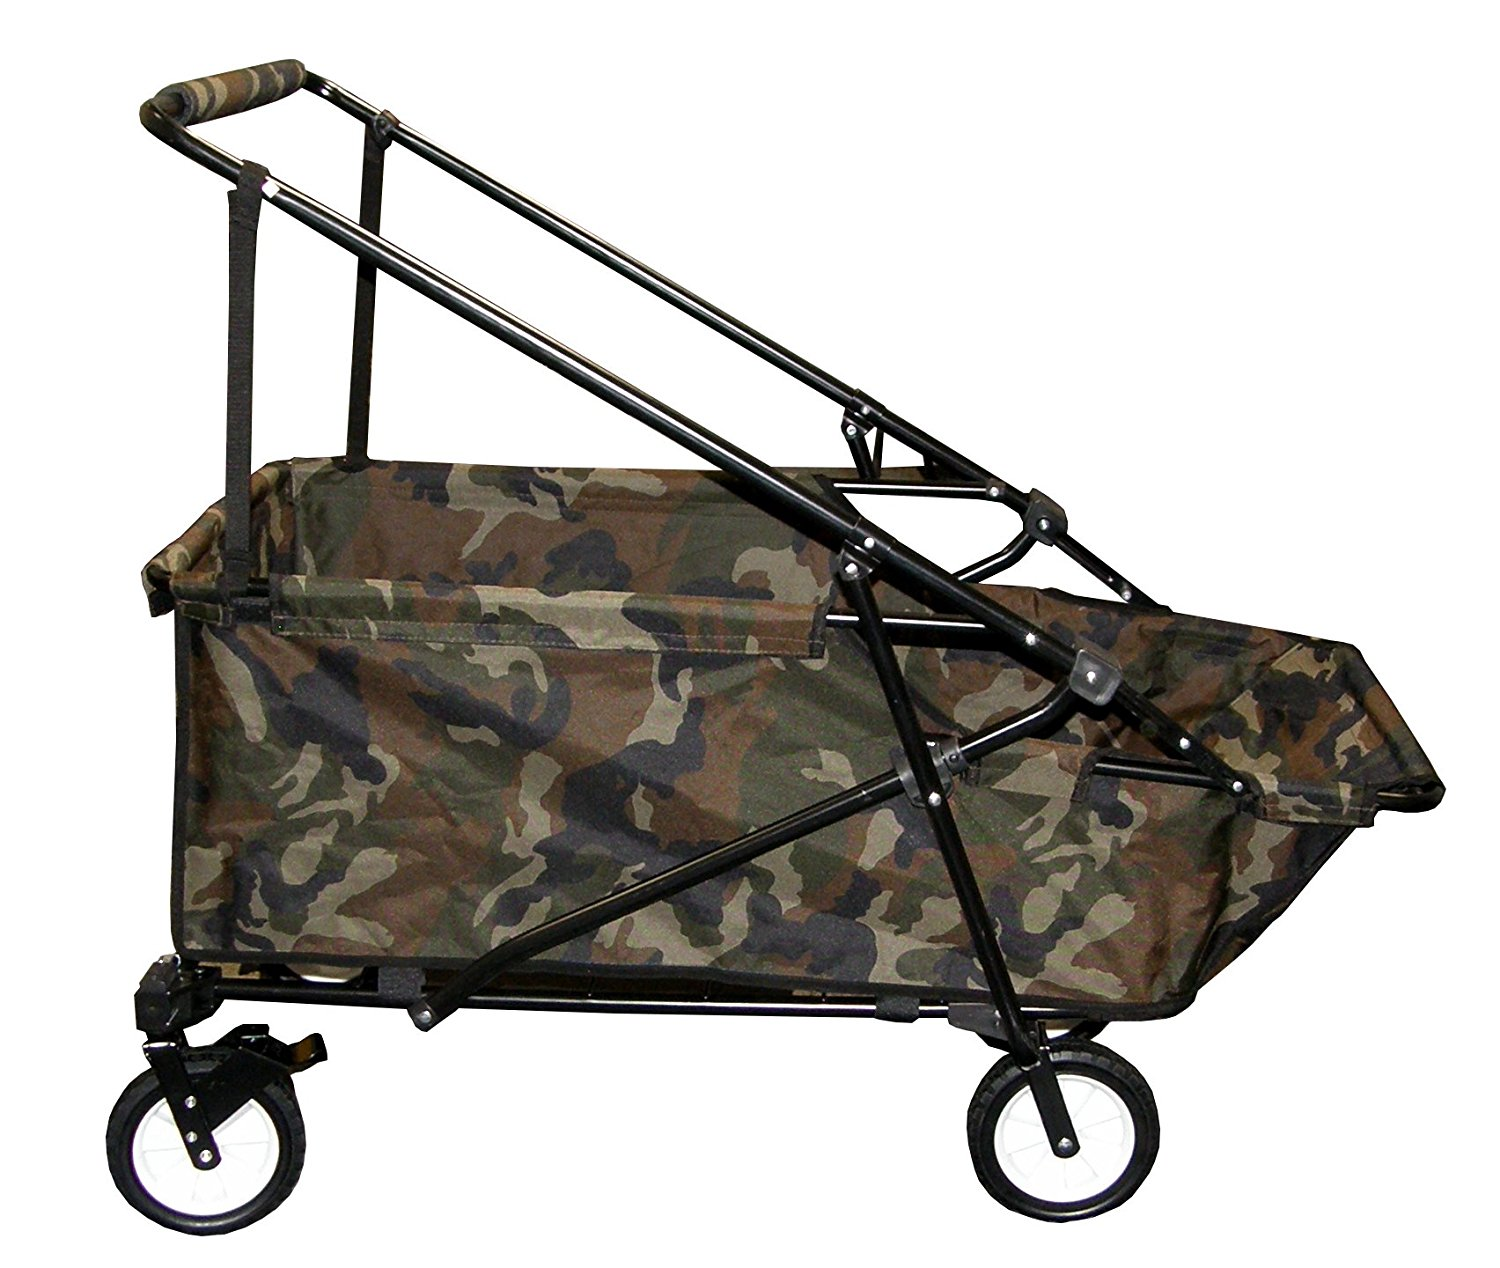 Collapsible Folding Wagon Utility Cart Beach Wagon